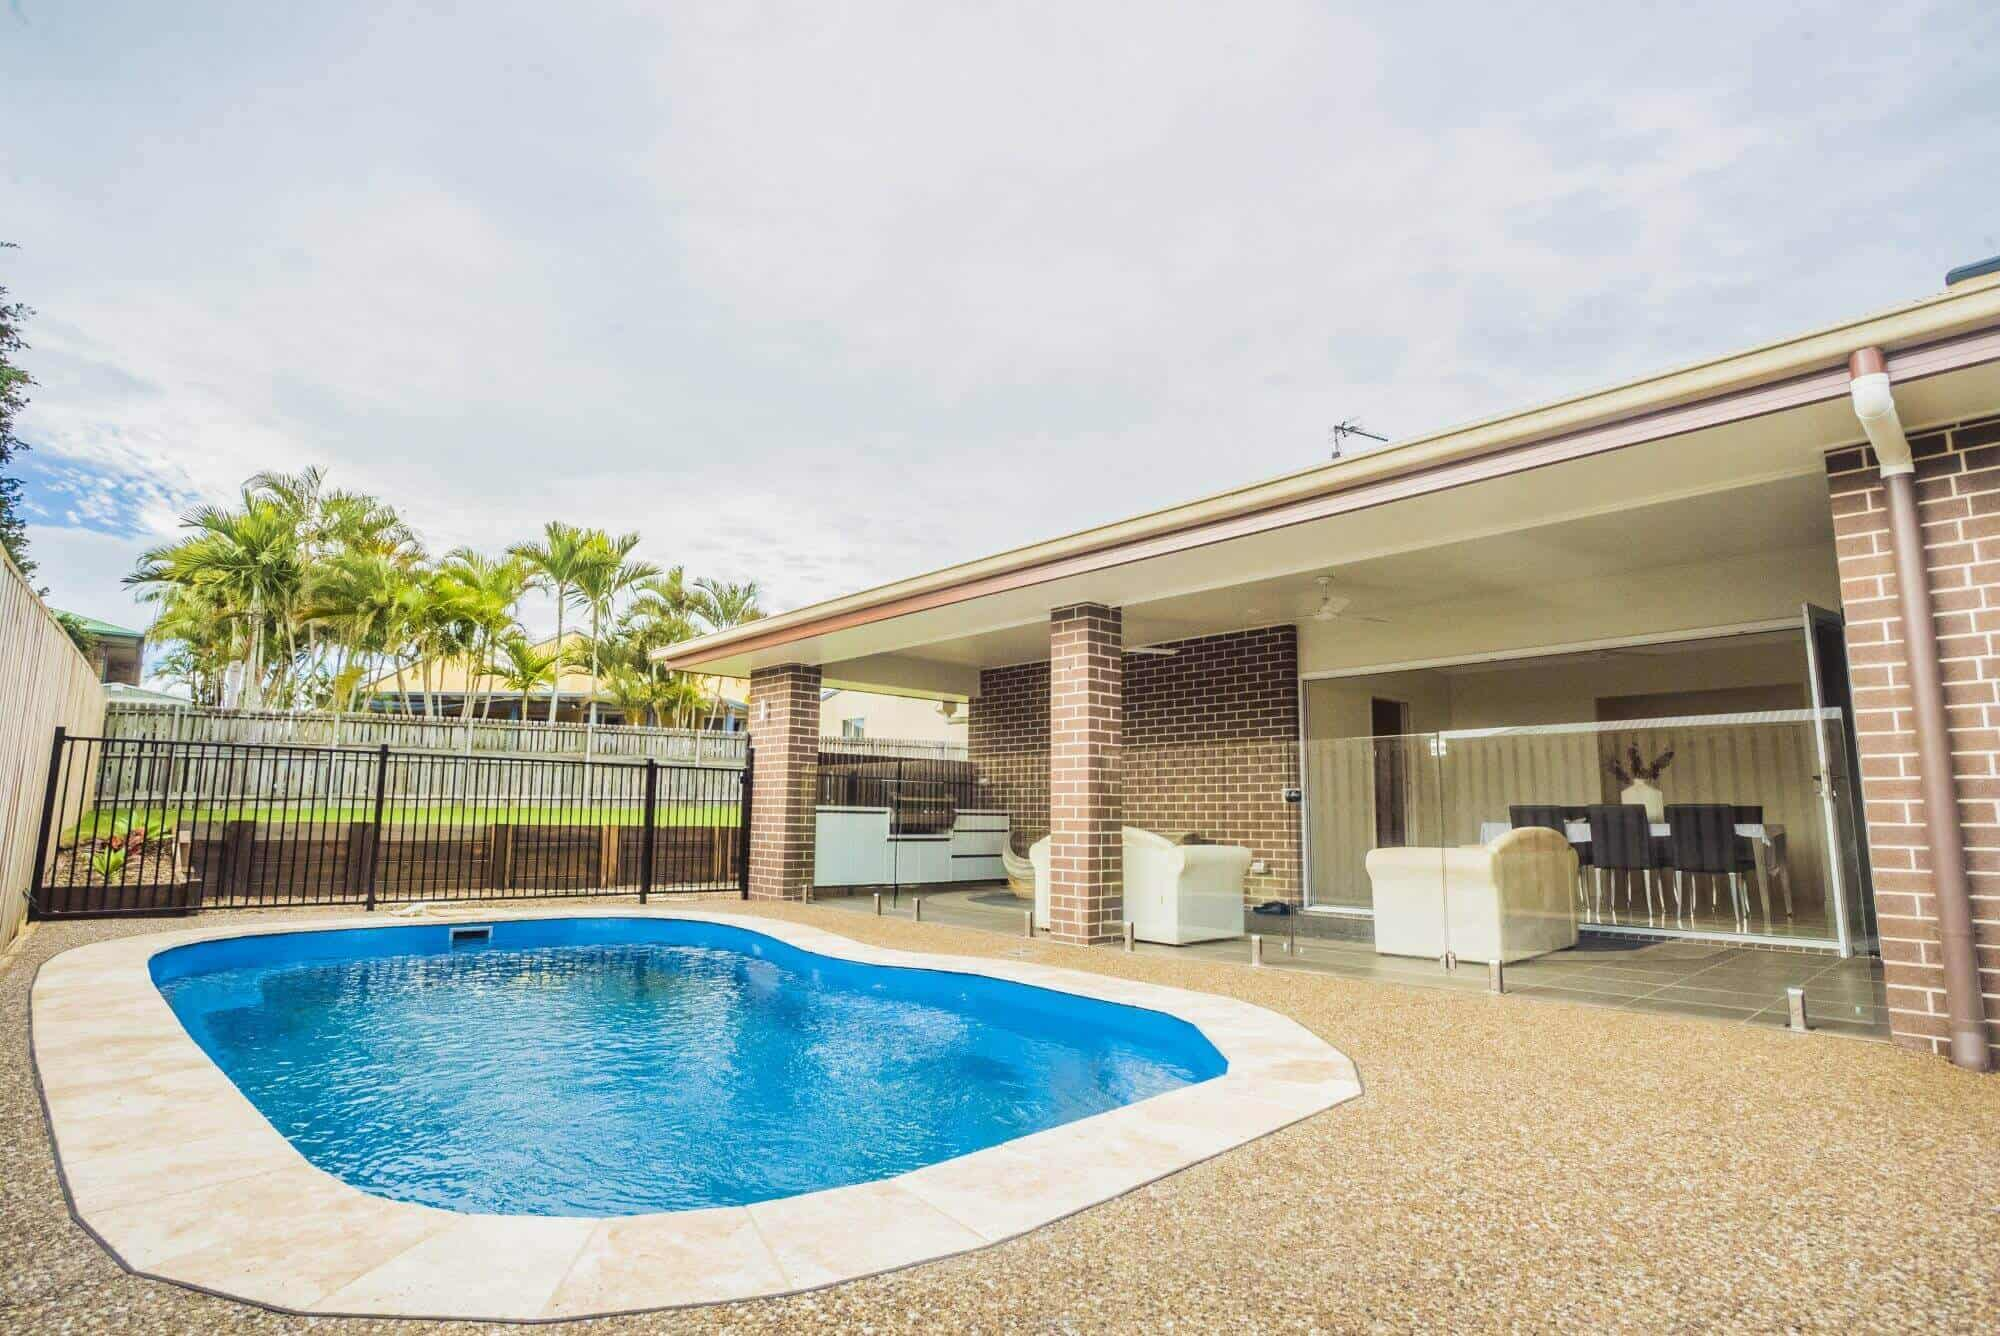 custom home builders Hervey Bay Display Home pool area